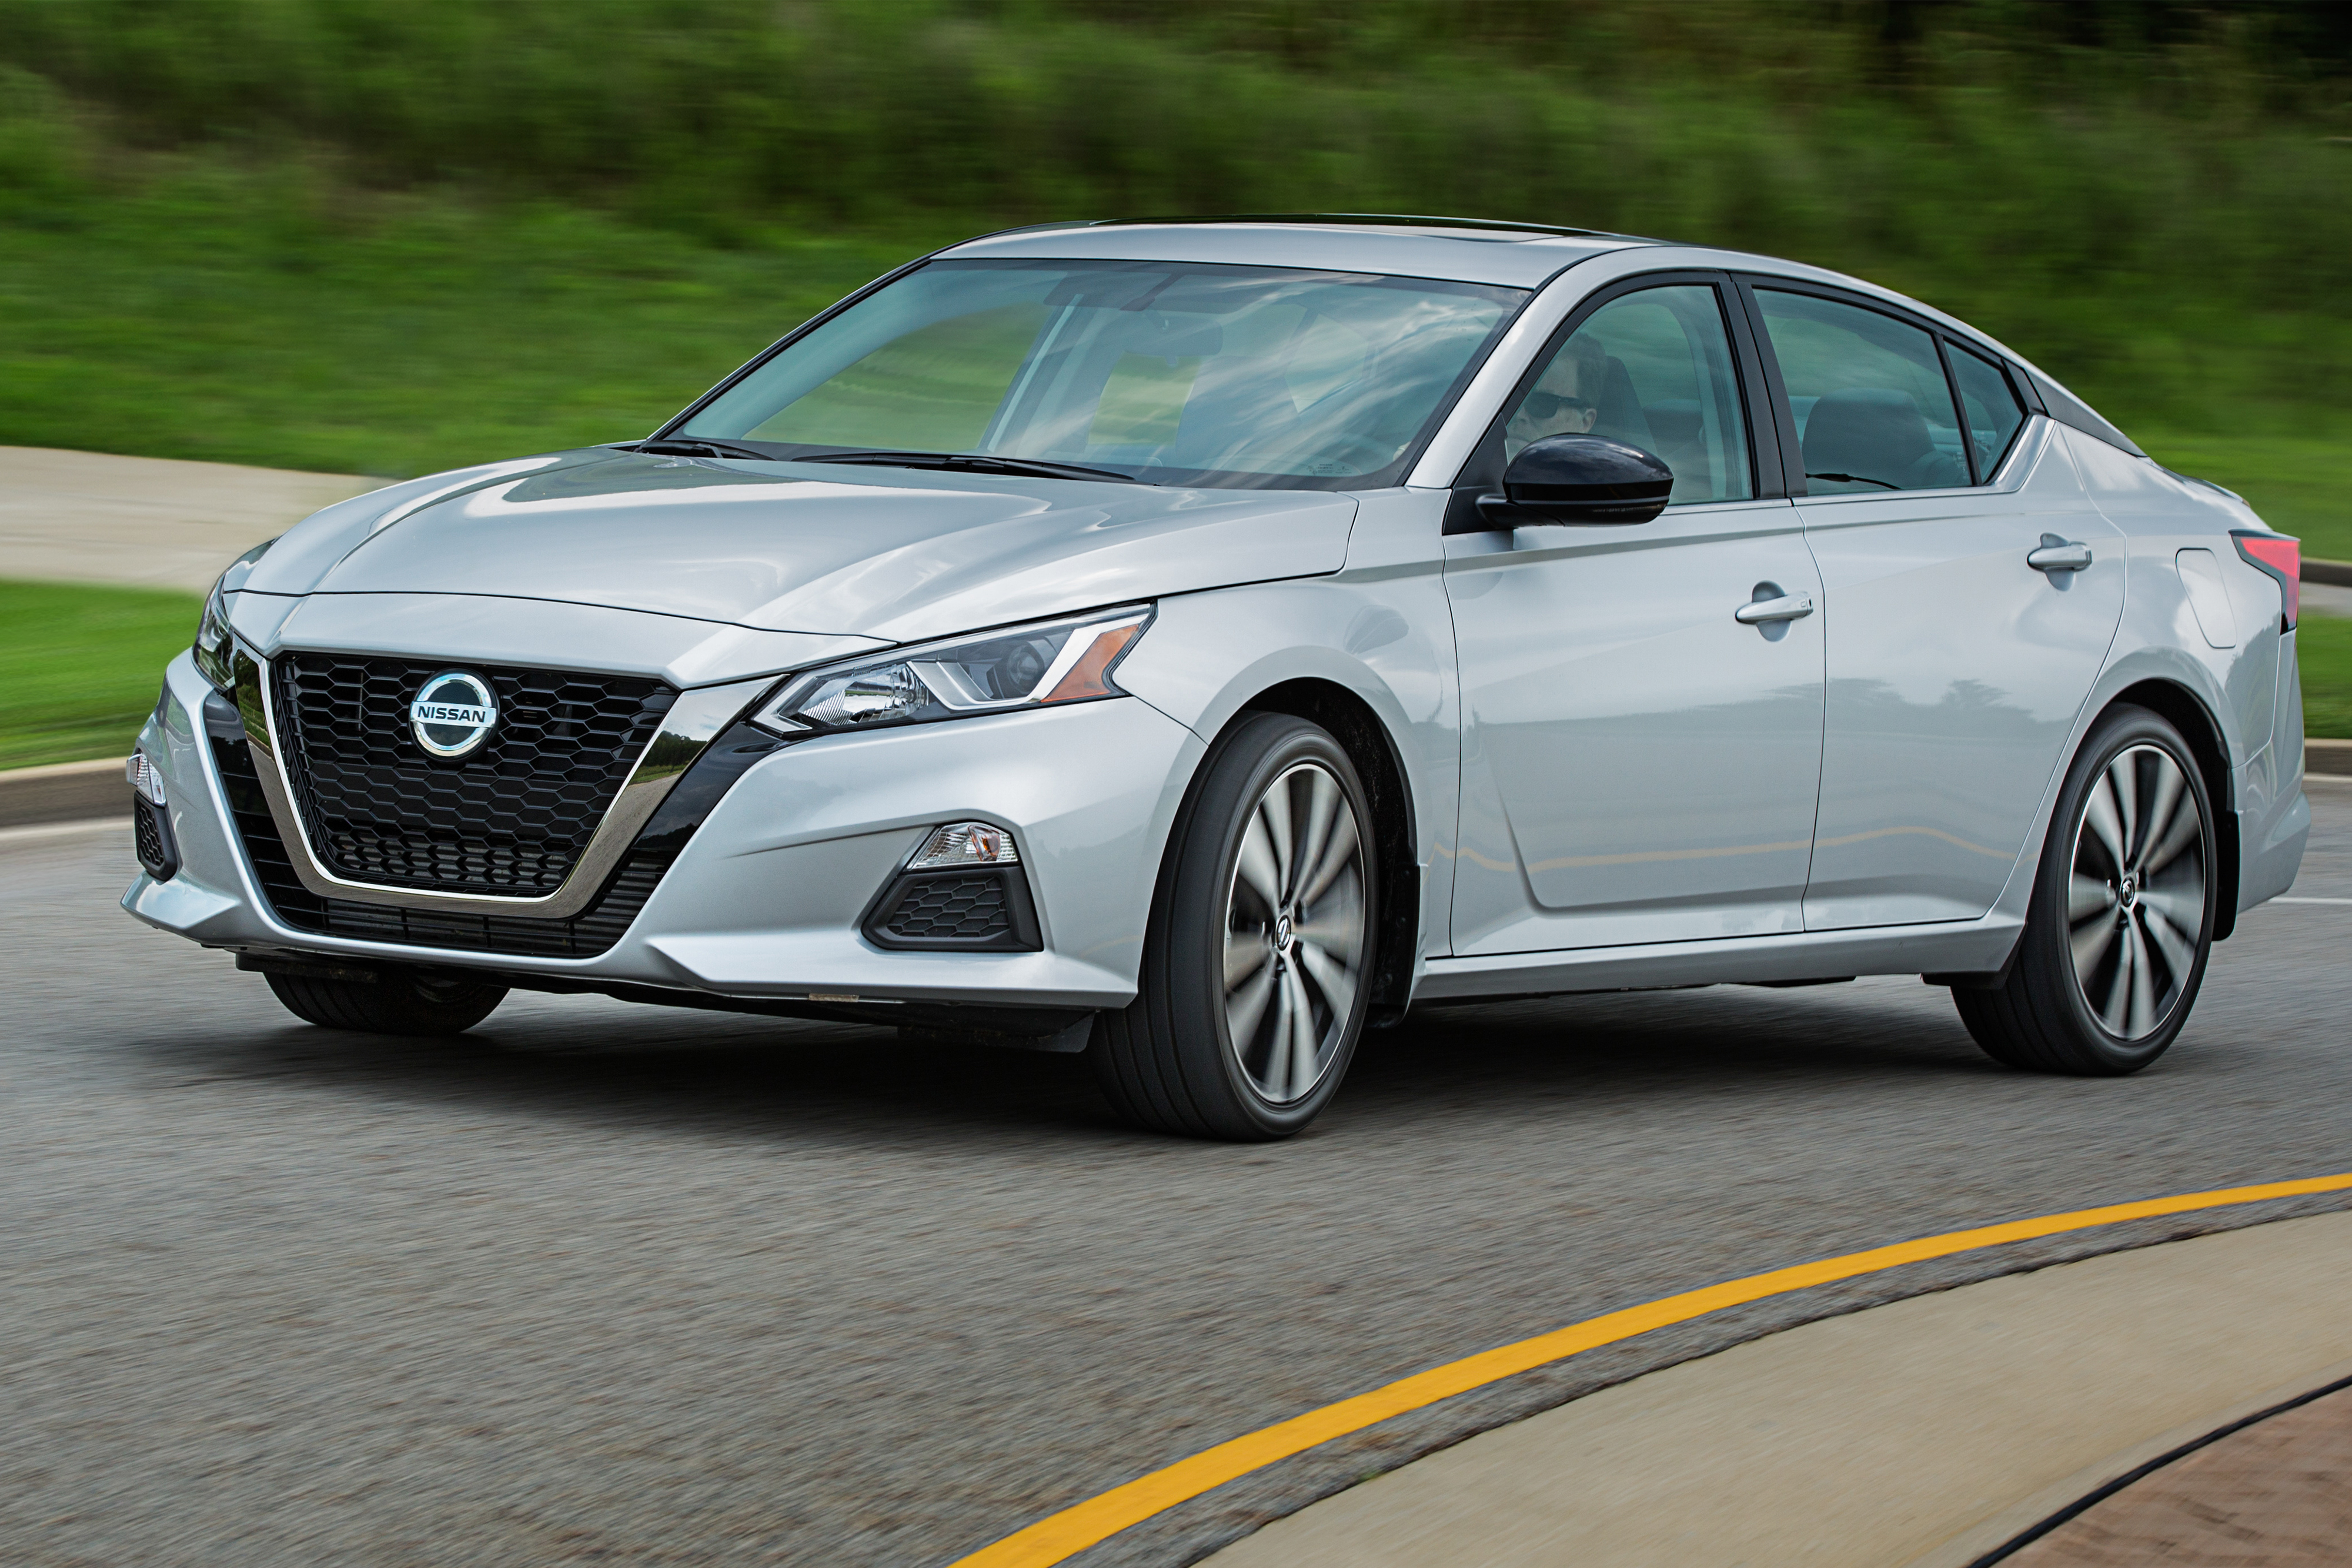 2020 Nissan Altima Gets Small Price Bump, Expanded Safety